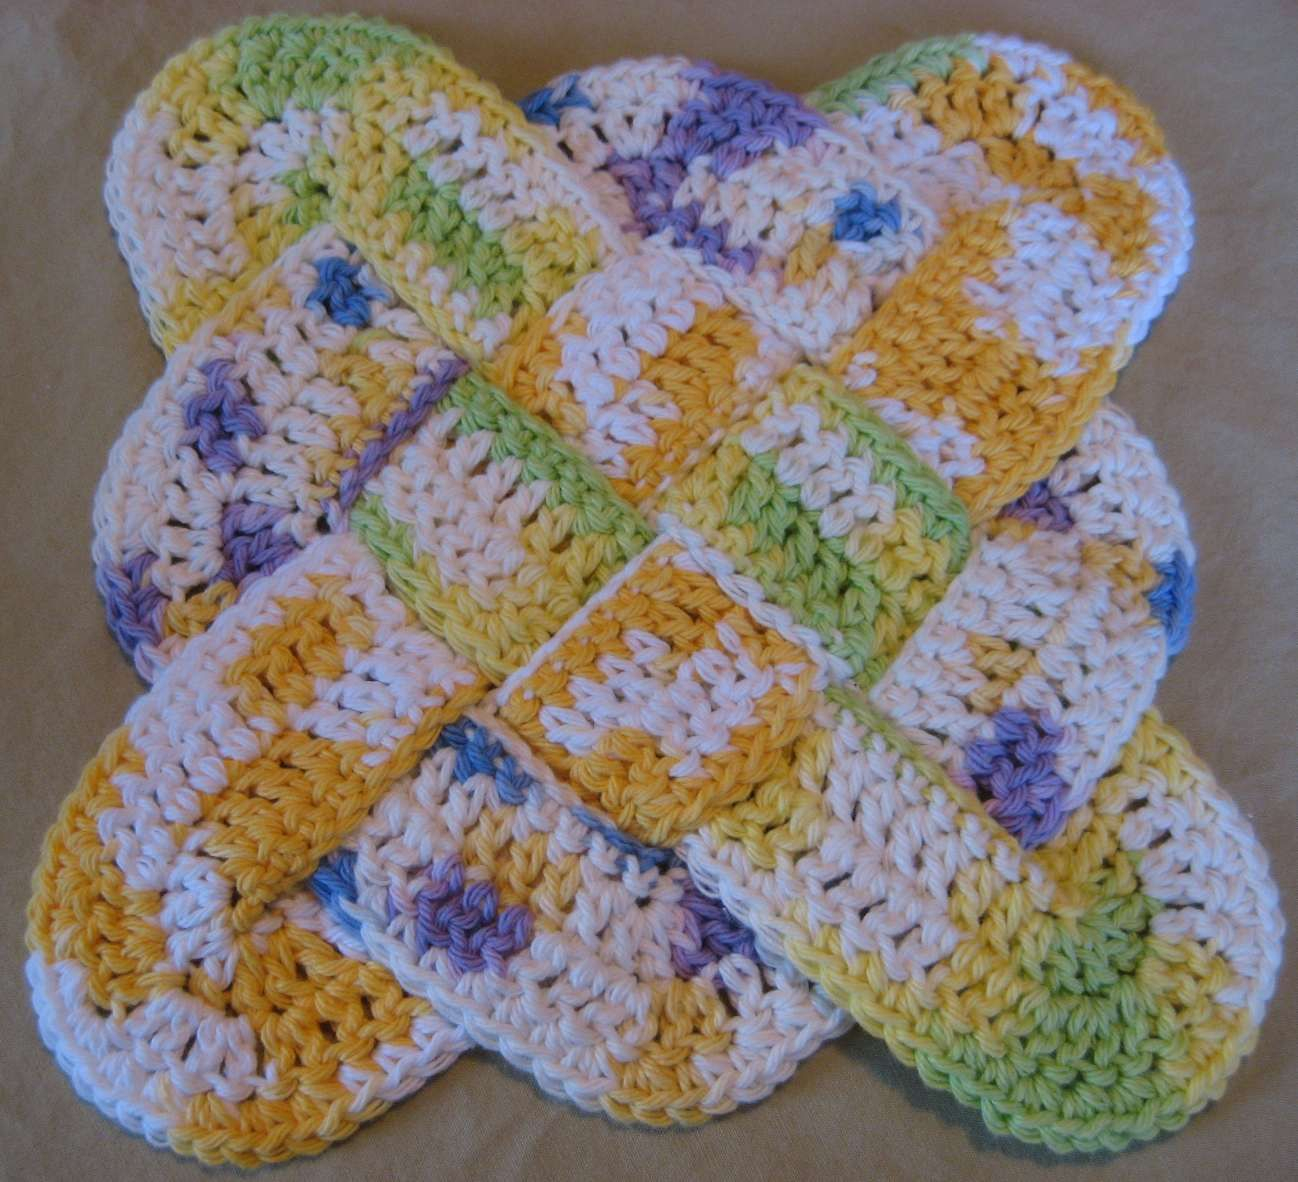 Crochet Trivets Hot Pads Free Pattern Hooked On Needles Crocheted Cotton Pot Holder Trivet Or Hot Pad